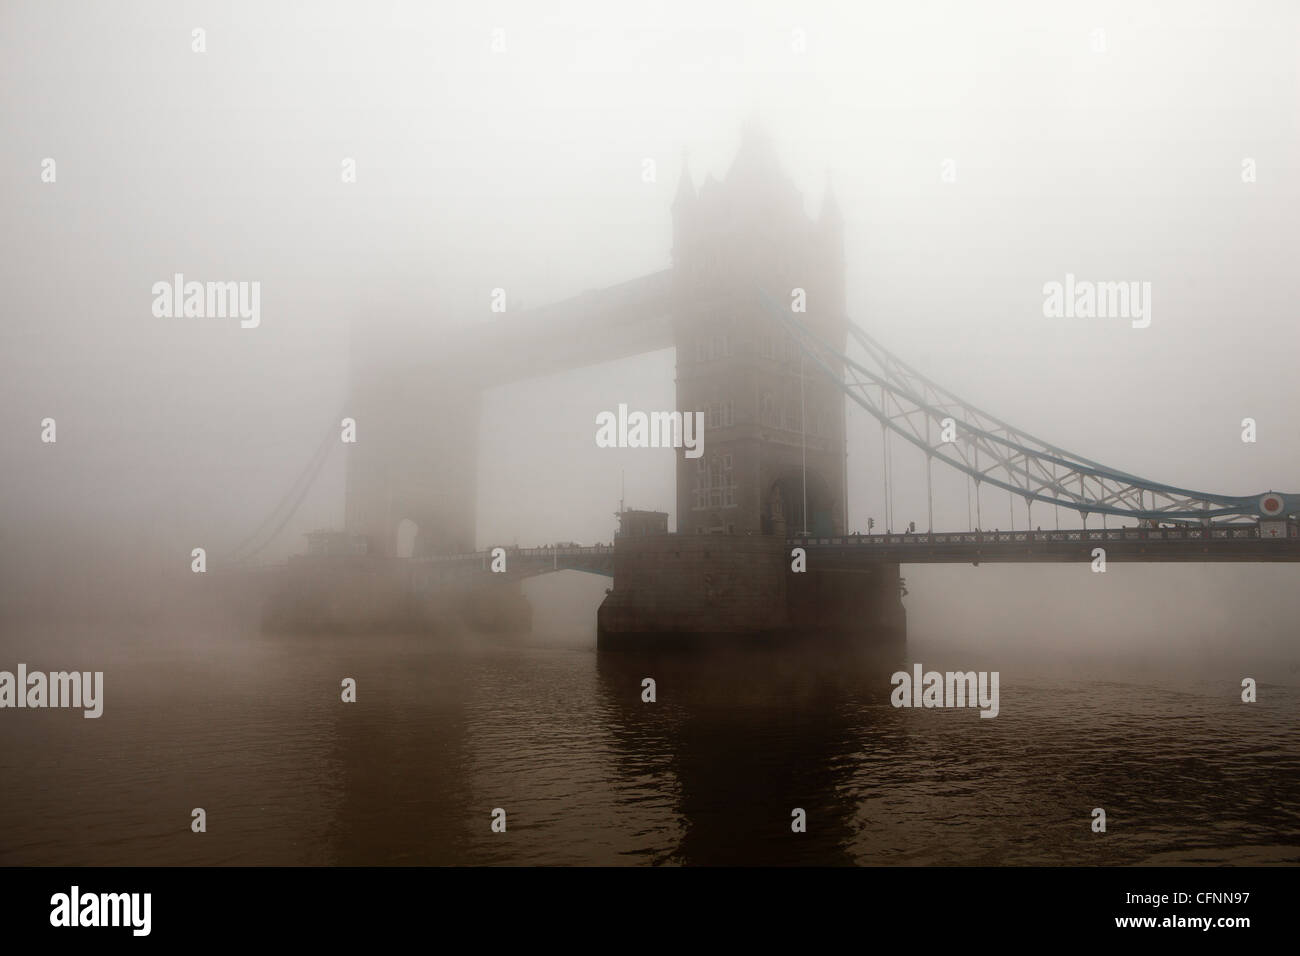 A view of Tower Bridge completely covered in morning mist - Stock Image